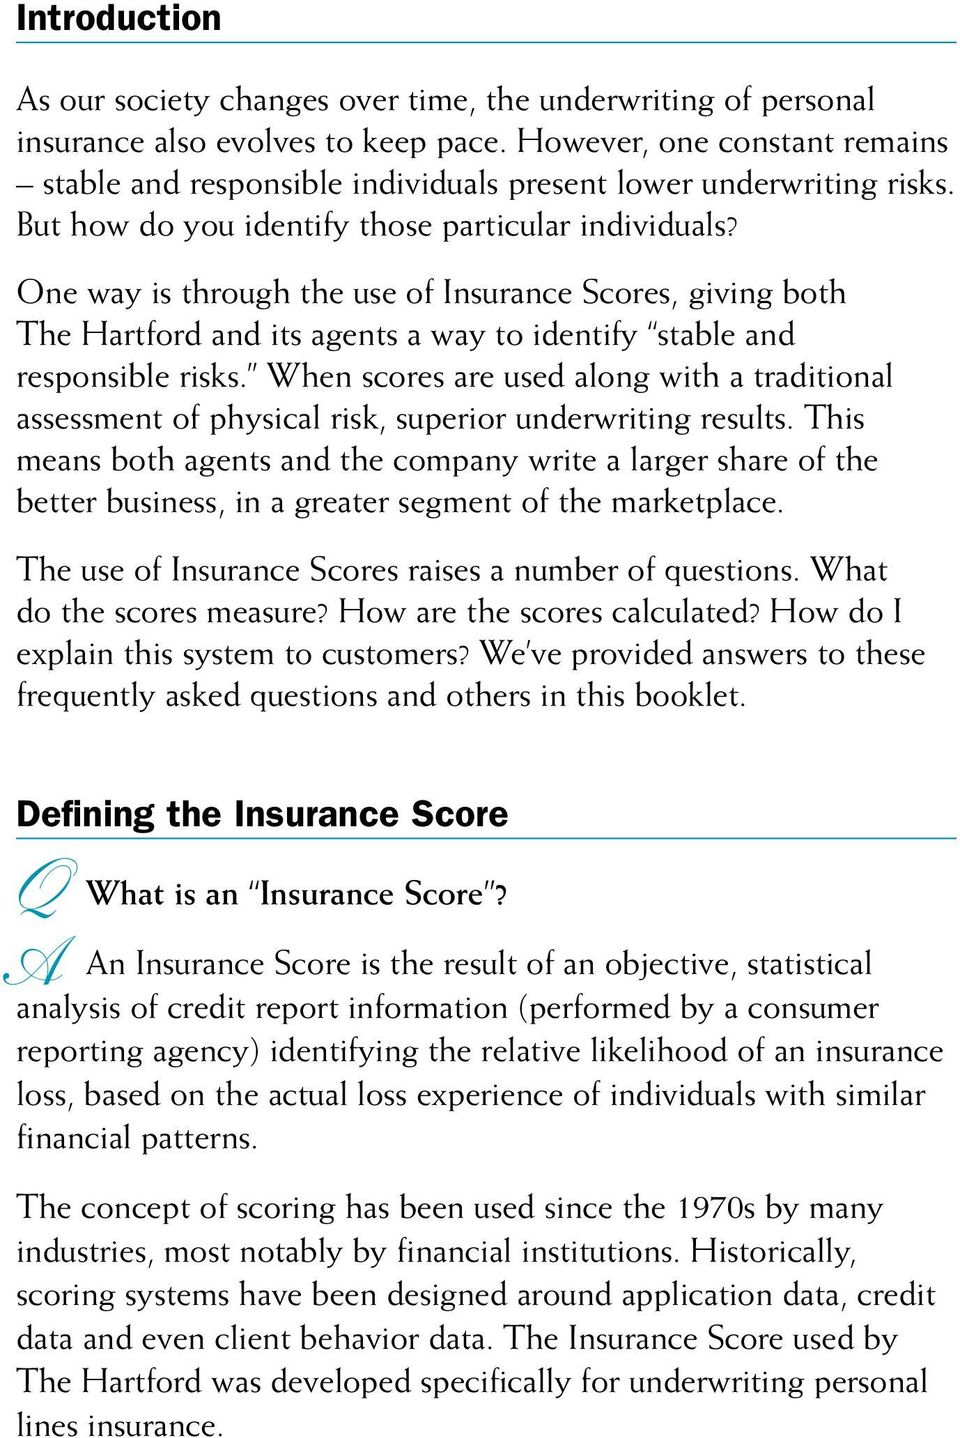 One way is through the use of Insurance Scores, giving both The Hartford and its agents a way to identify stable and responsible risks.